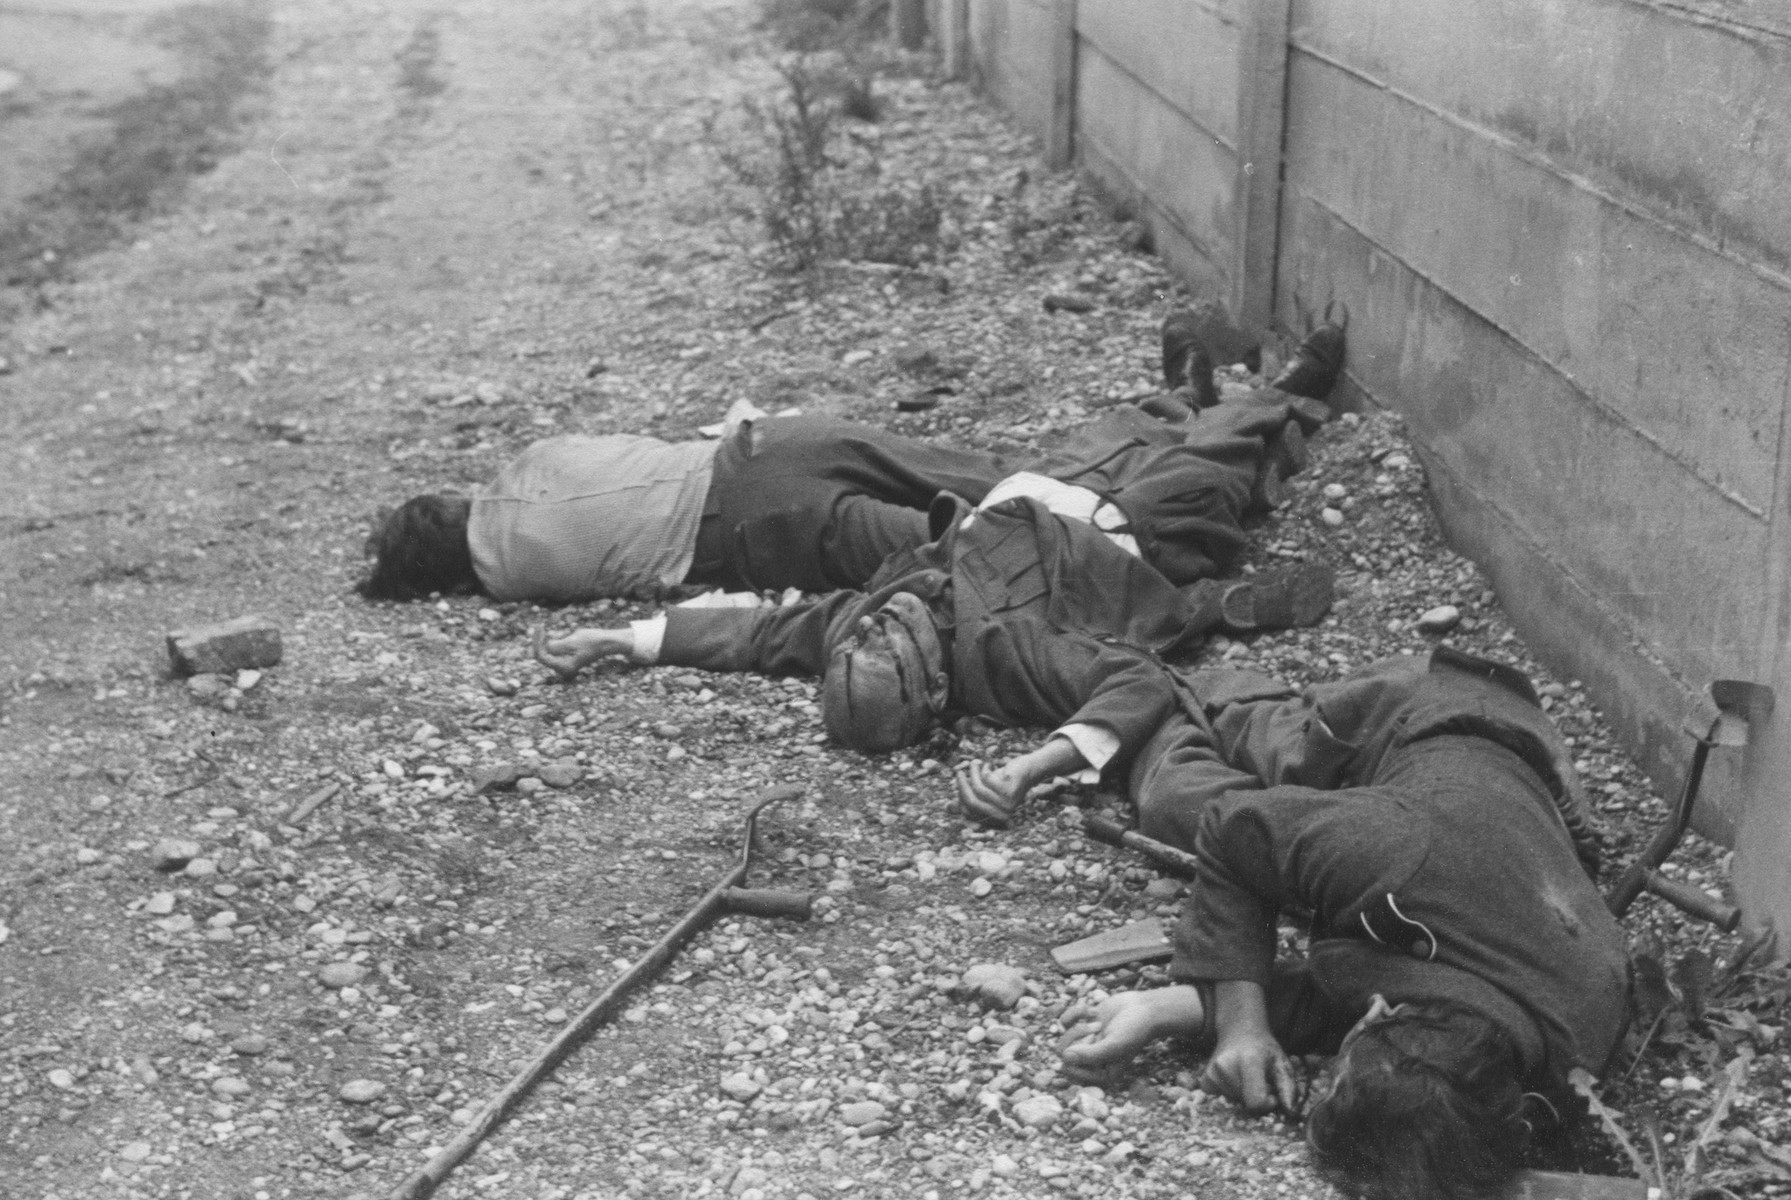 Slain camp guards, killed in revenge killings, lie next to a wall in the Dachau concentration camp.